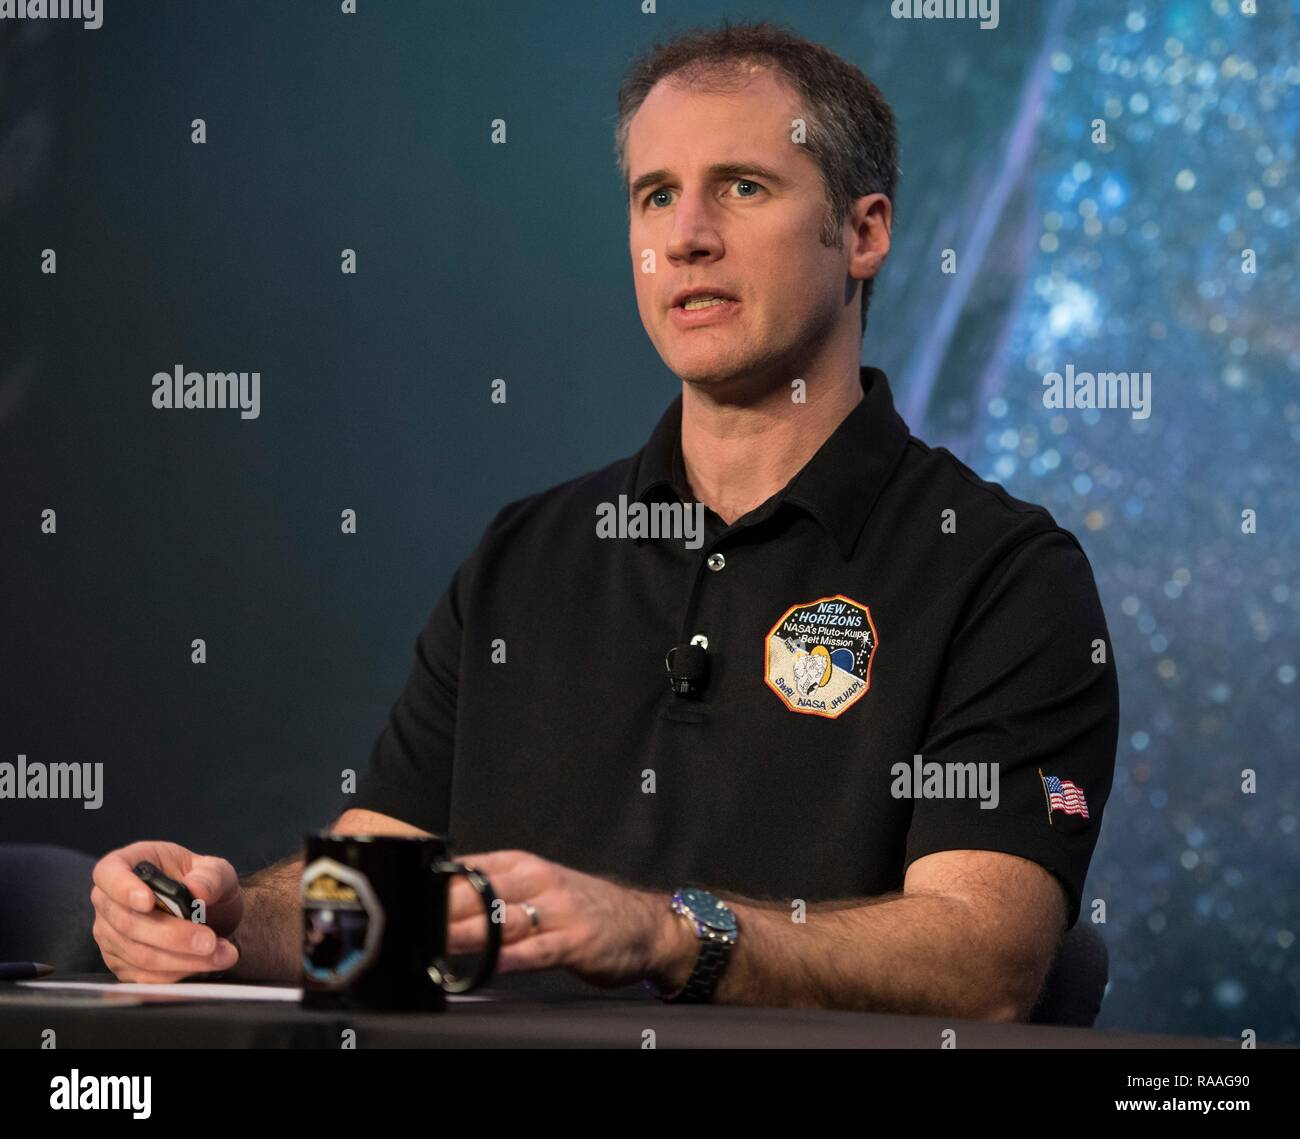 Fred Pelletier, lead of the project navigation team at KinetX, speaks during the press conference prior to the expected flyby of Ultima Thule by the New Horizon spacecraft at Johns Hopkins University Applied Physics Laboratory December 31, 2018 in Laurel, Maryland. The flyby by the space probe occurred 6.5bn km (4bn miles) away, making it the most distant ever exploration of an object in our Solar System. - Stock Image